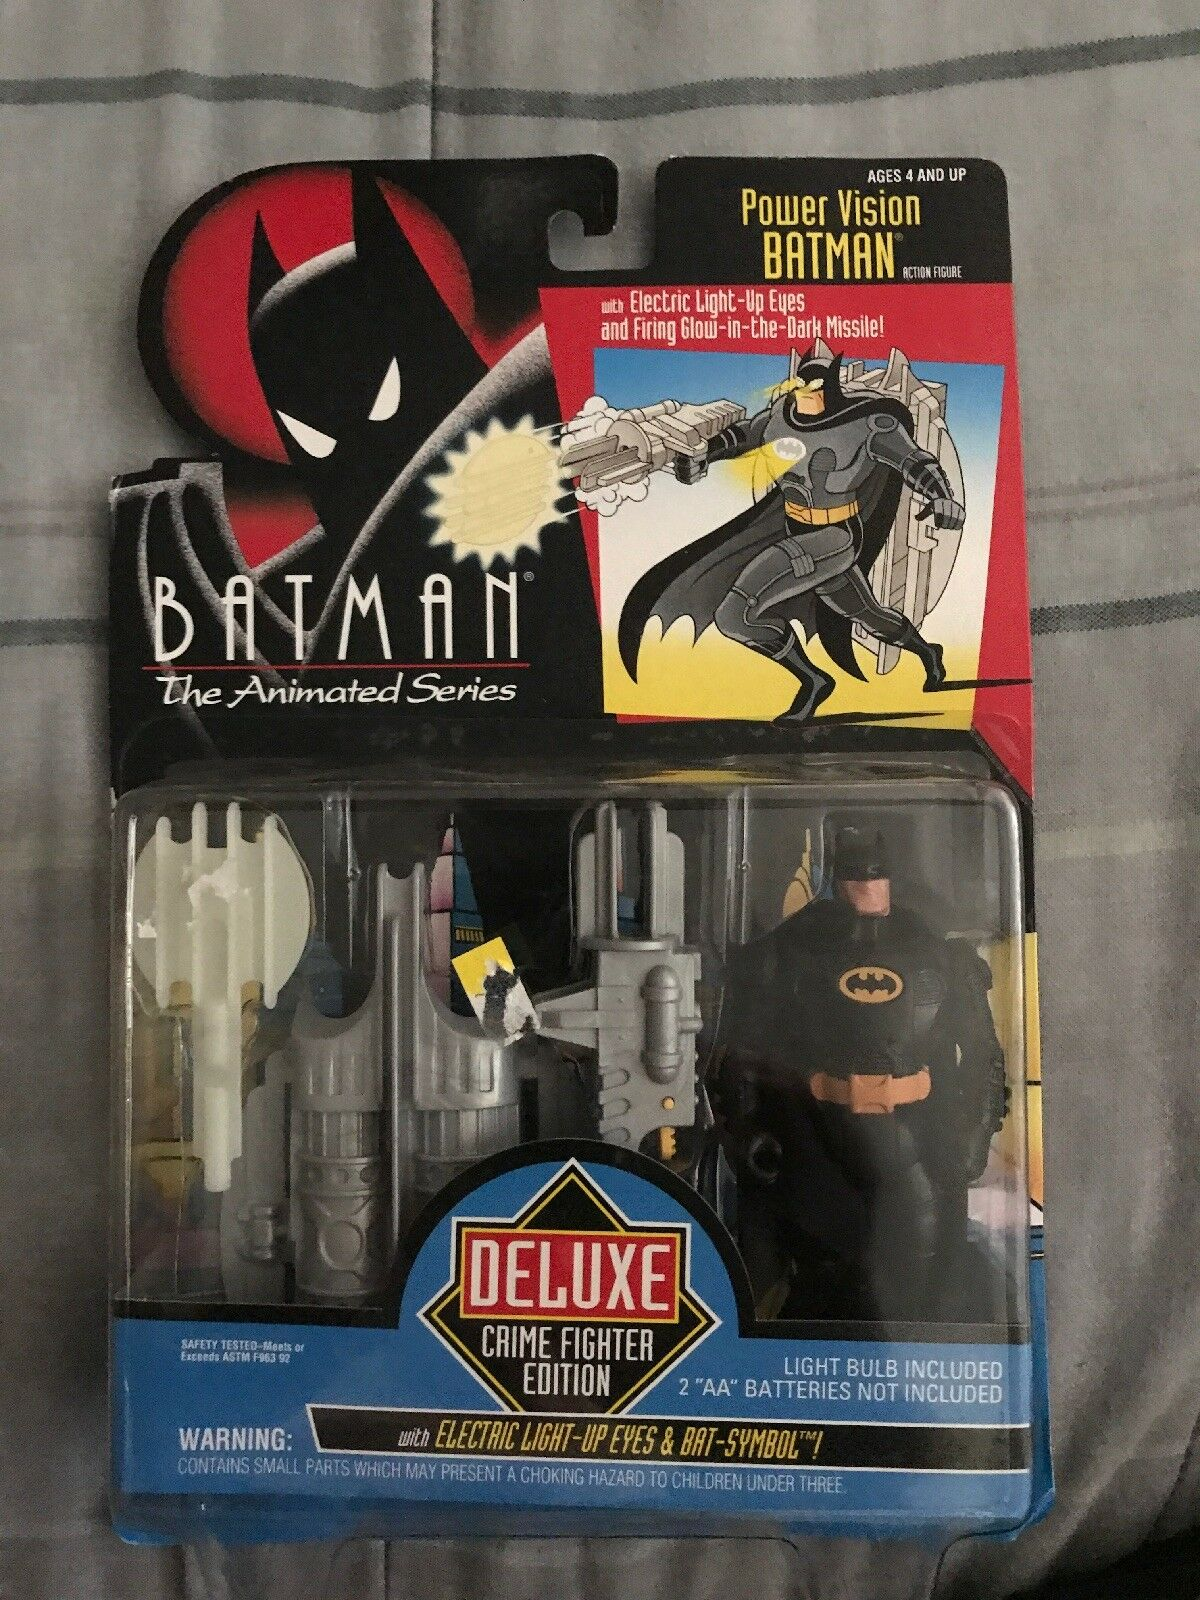 Batman the Animated Series Deluxe Crime Fighter Edition Power Vision Batman